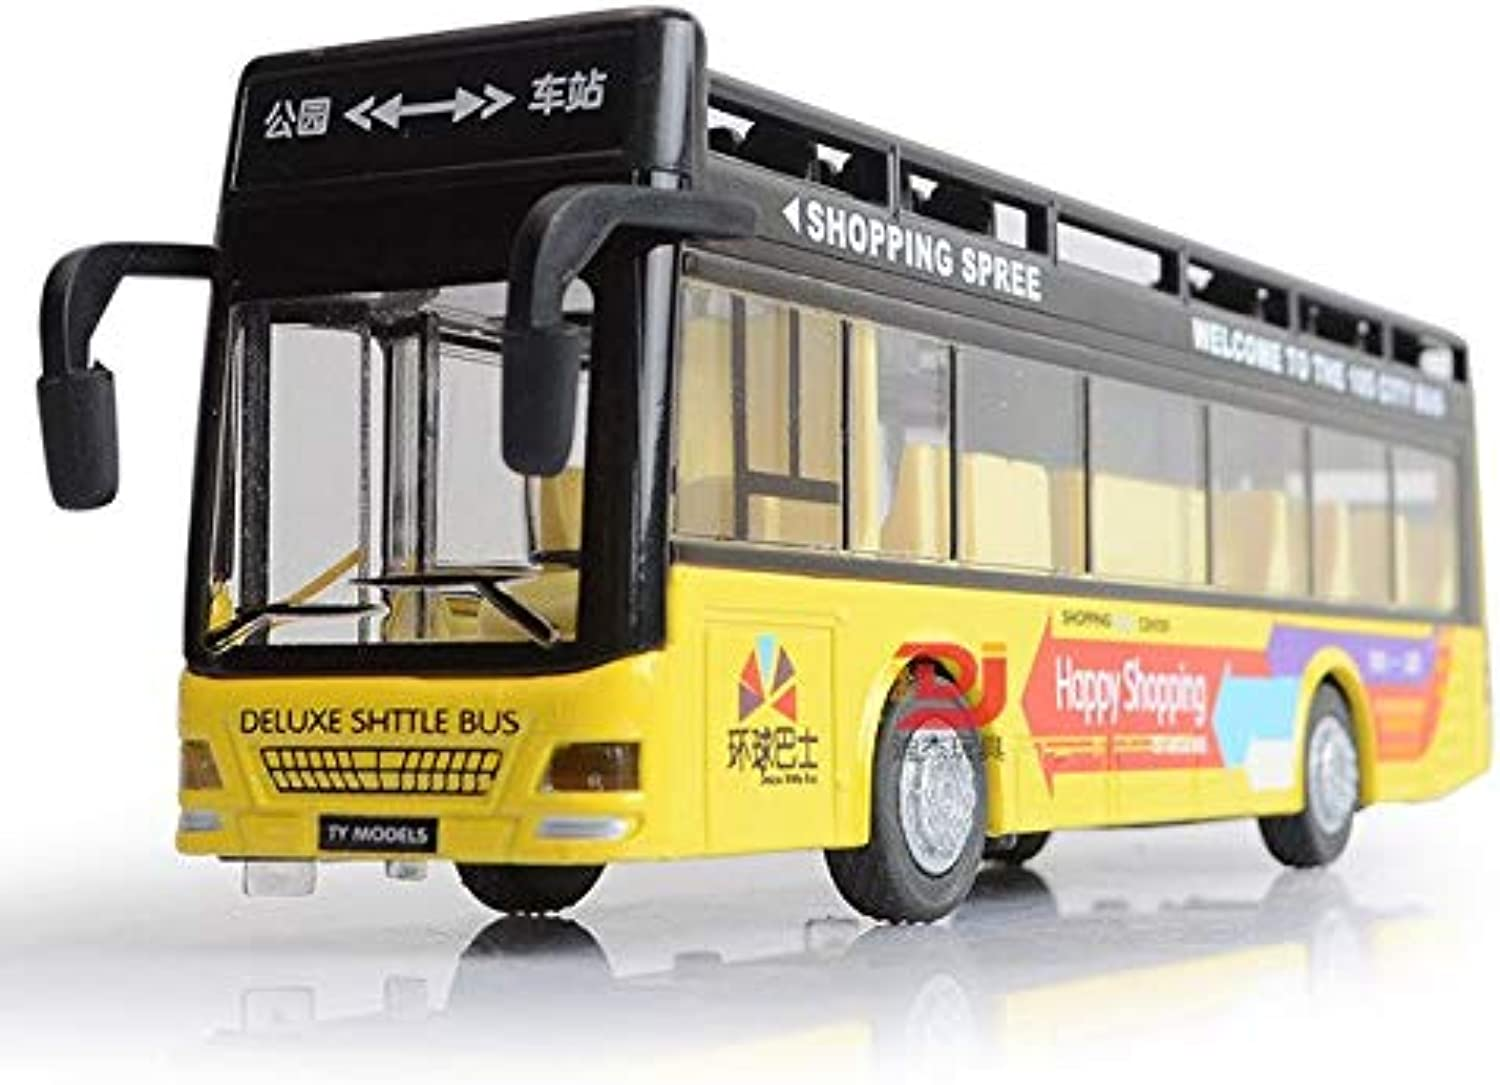 Generic Sale 21 cm Pull Back Bus Model High Imitation Double Sightseeing Bus Flash Light Toy Vehicle Cars for Boys Gift PGM124 Yellow